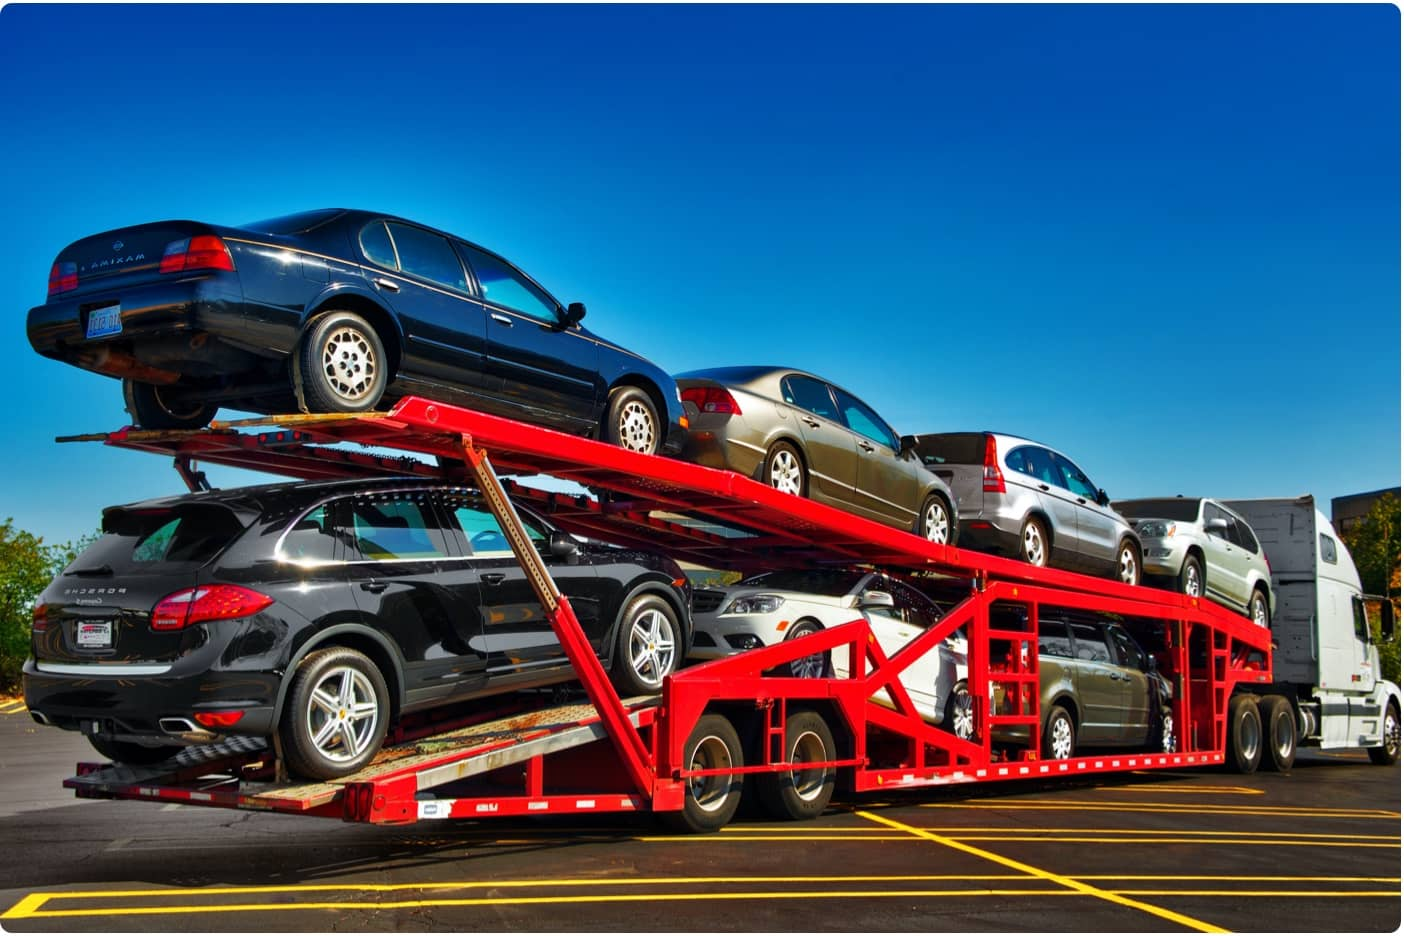 enclosed car transport, international car transport